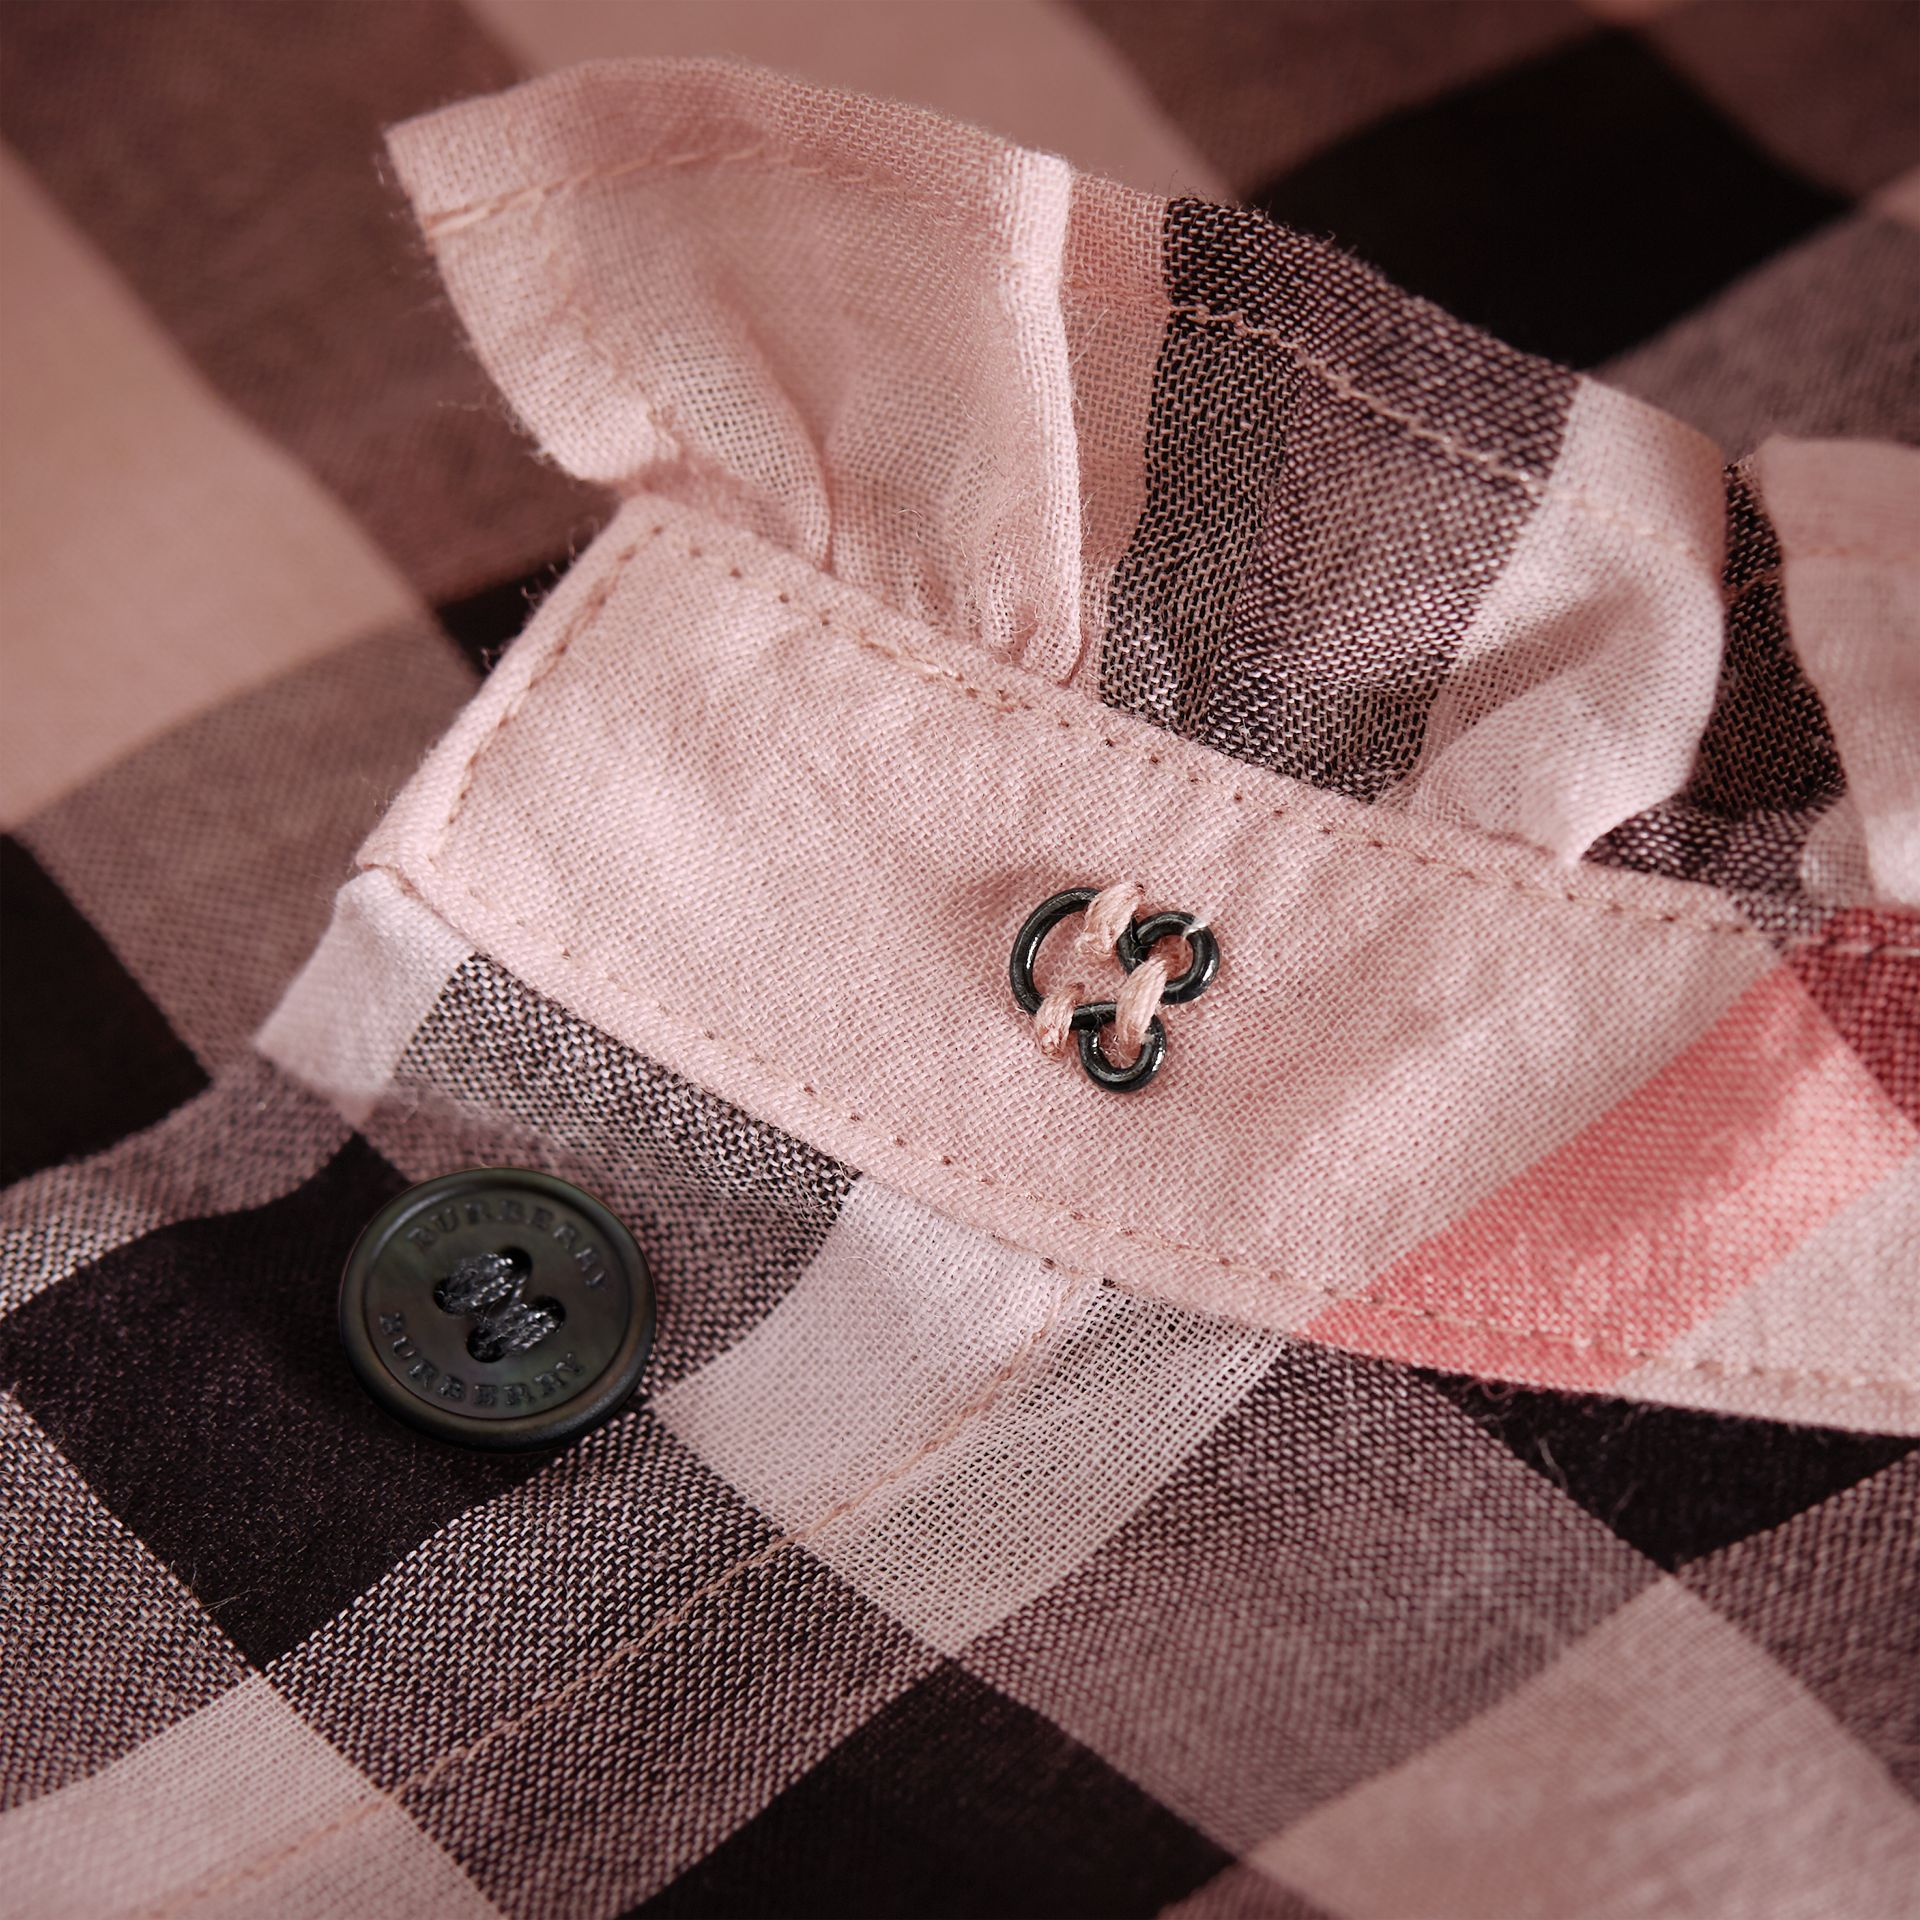 Ruffle Detail Check Cotton Shirt in Vintage Pink - Women | Burberry - gallery image 2